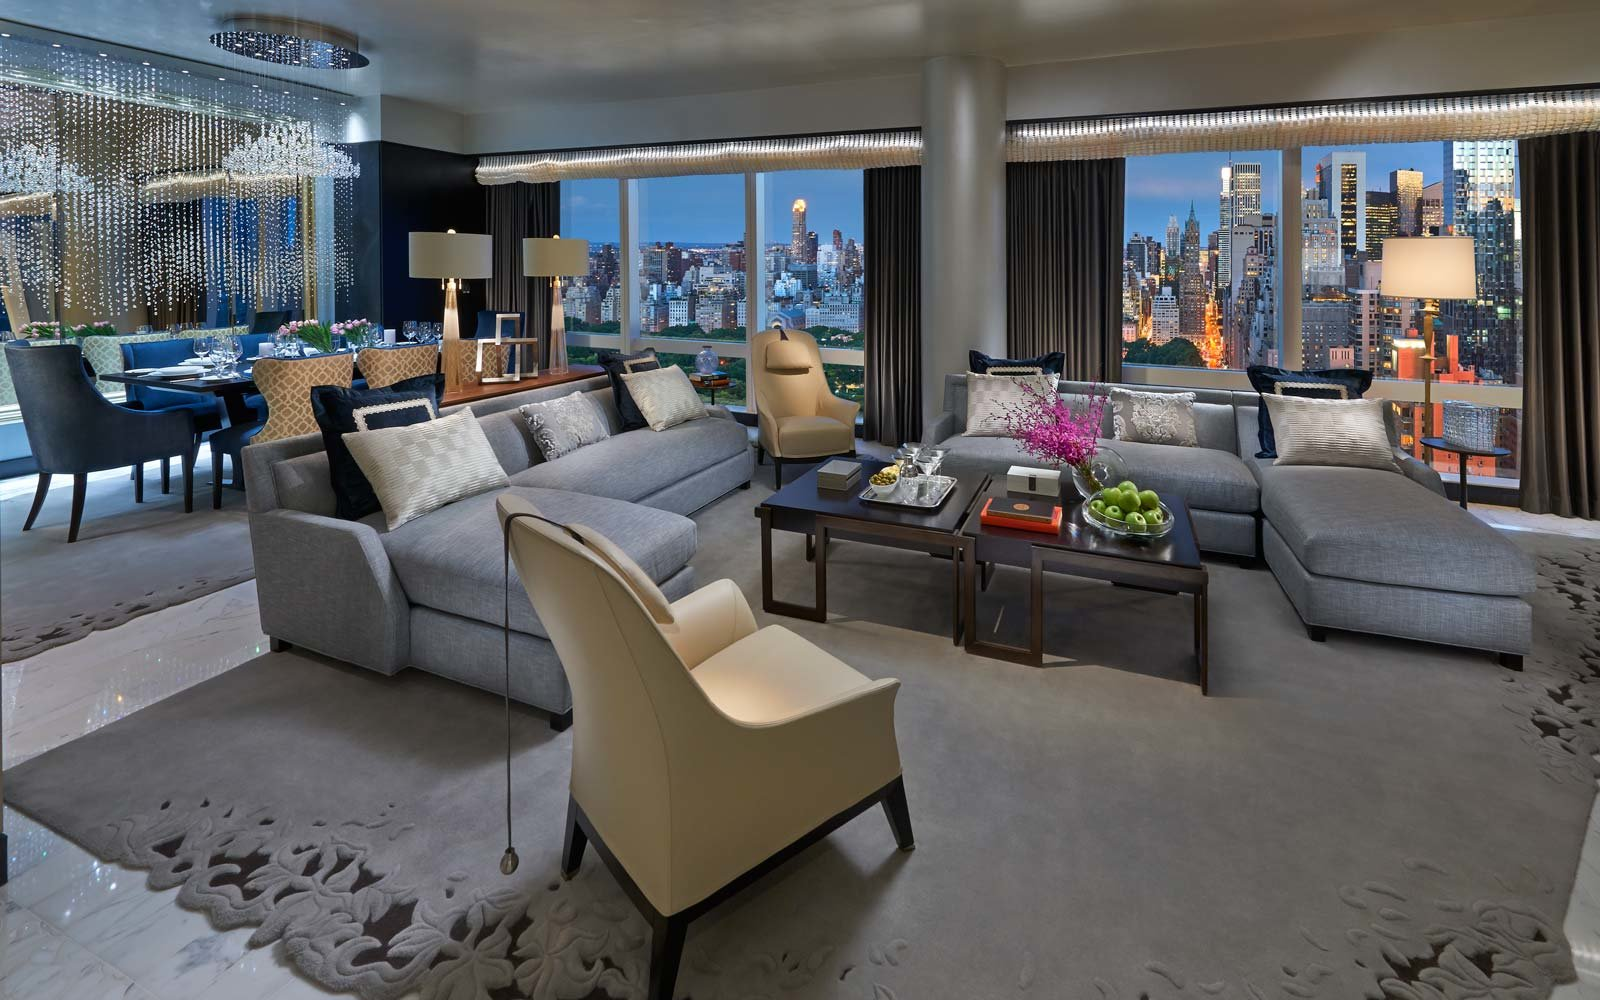 Suite 5000 at the Mandarin Oriental